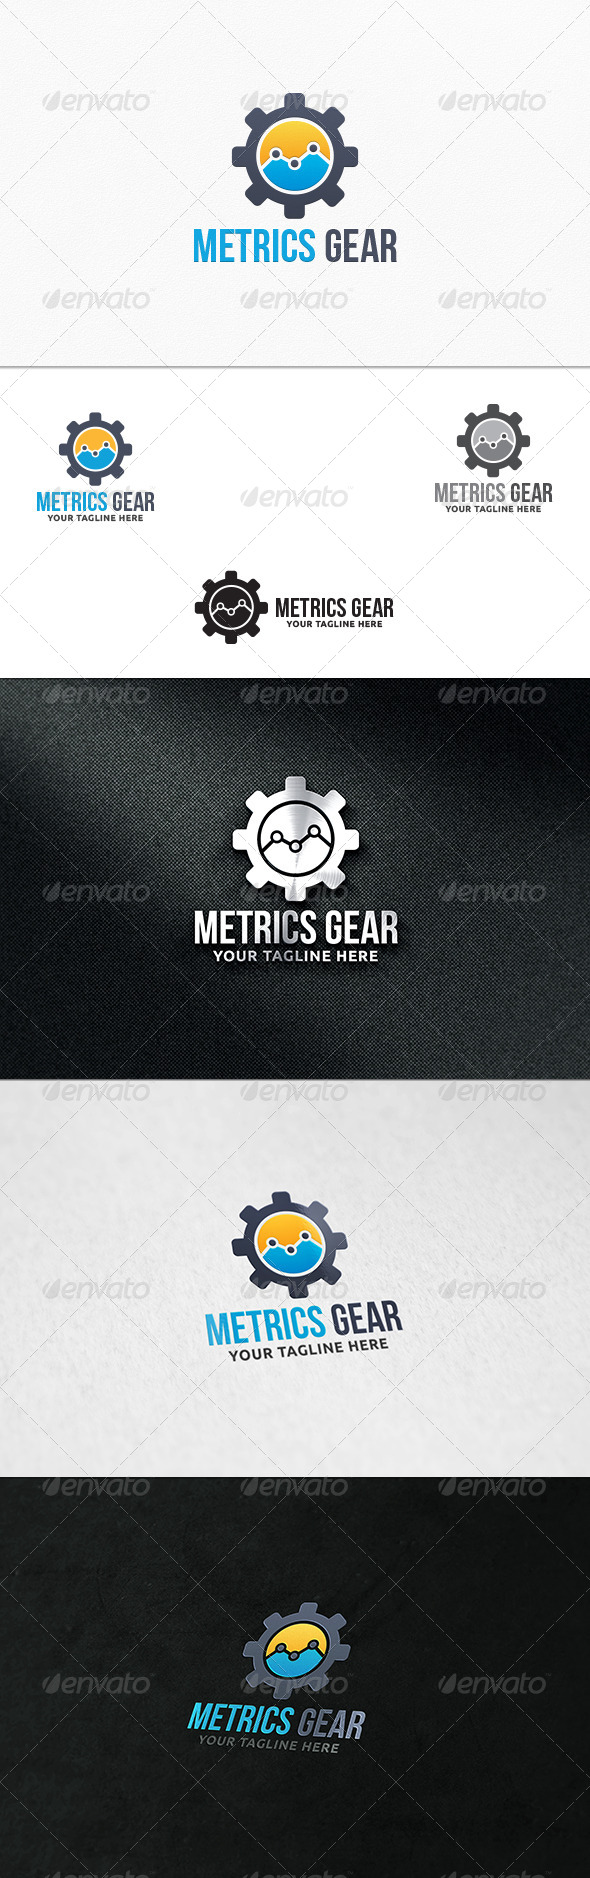 GraphicRiver Metrics Gear Logo Template 7363895